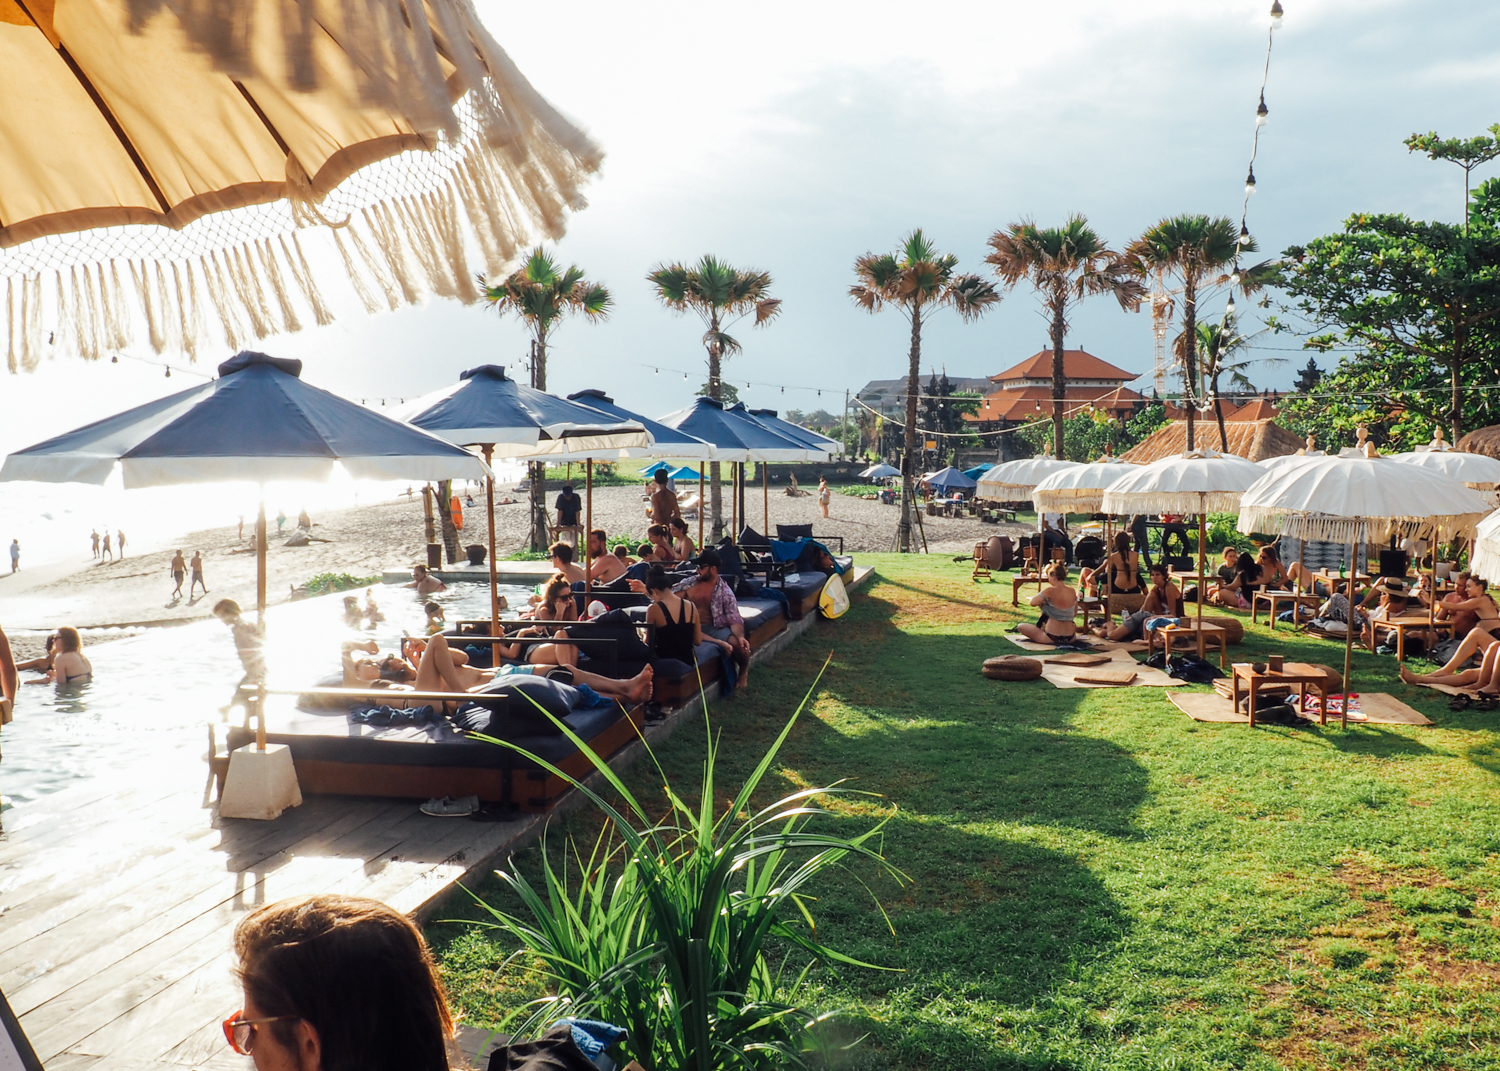 bali travel guide: canggu, the lawn